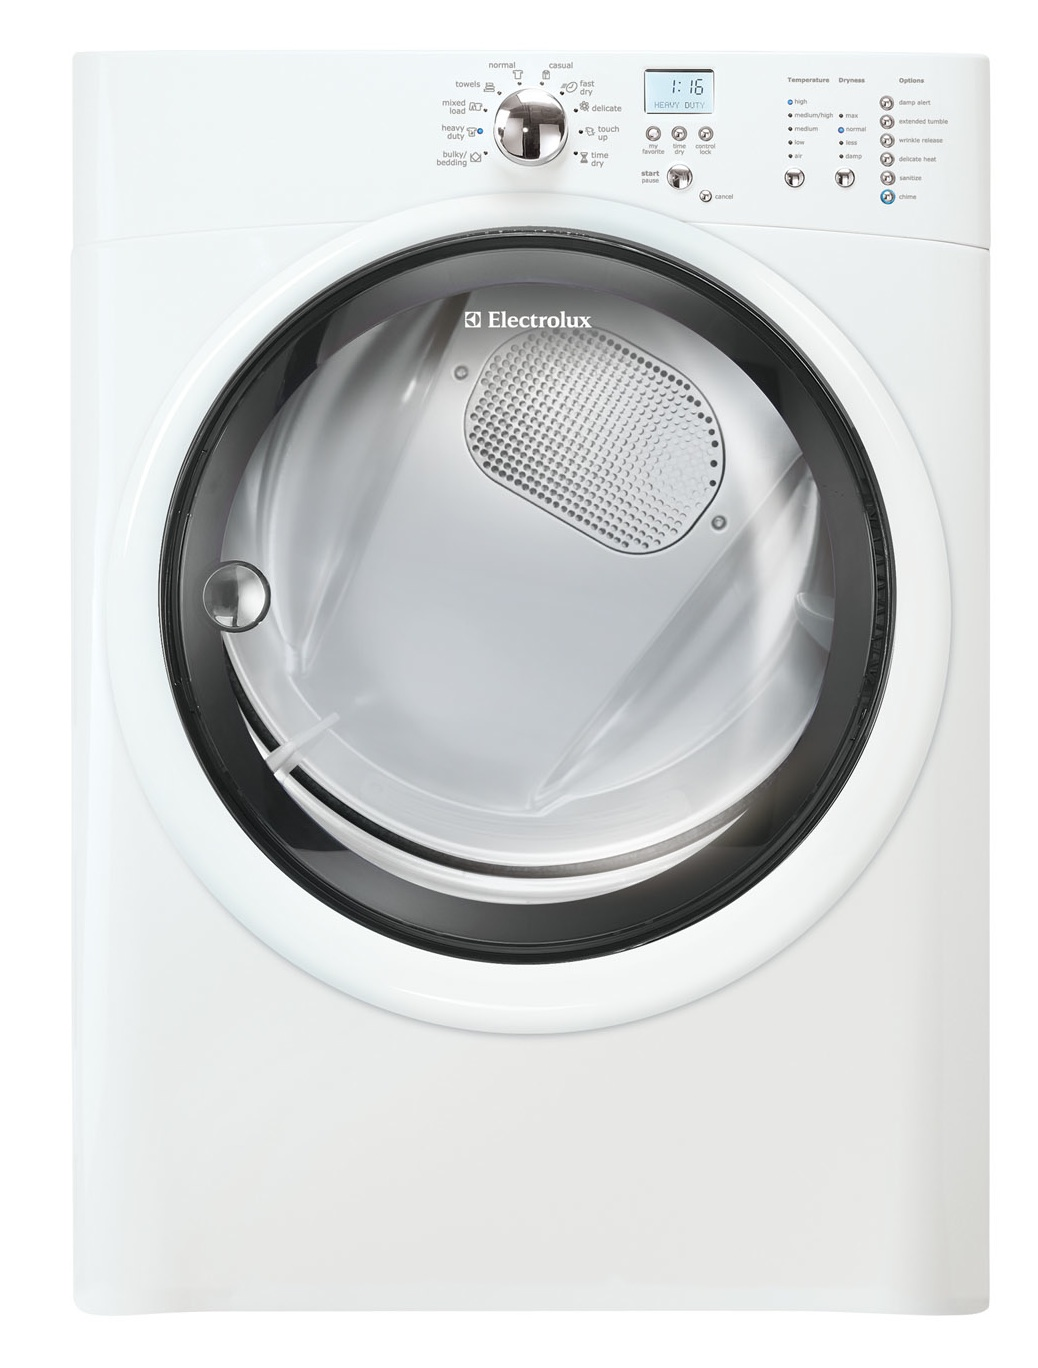 Electrolux White Front Load Washer And Electric Dryer Laundry Set W  Pedestals